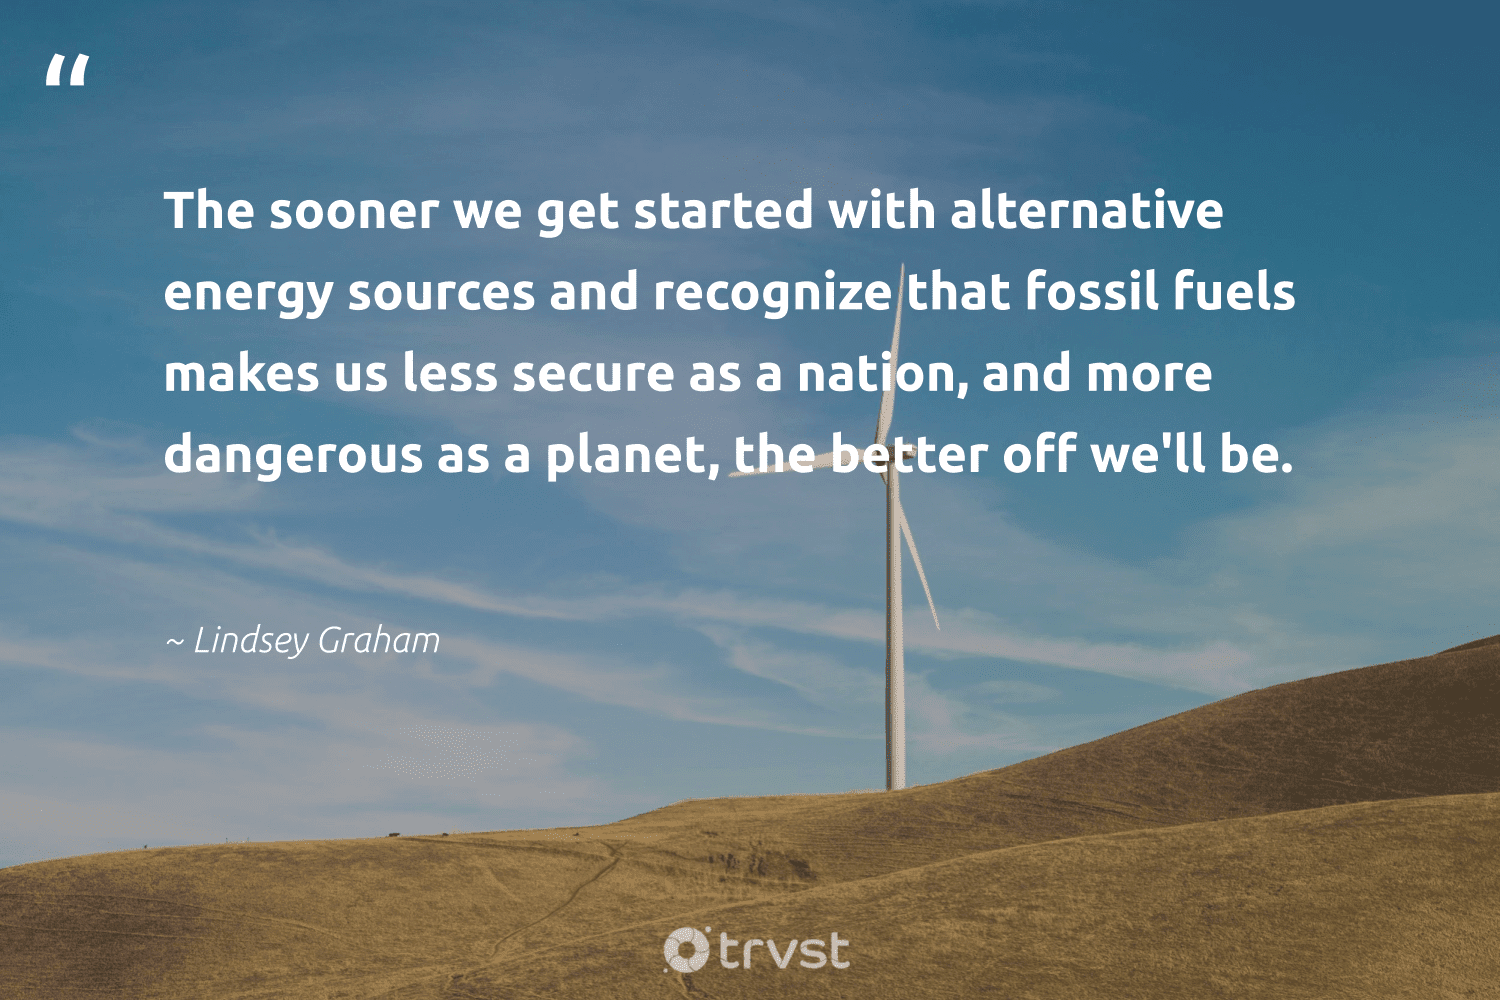 """""""The sooner we get started with alternative energy sources and recognize that fossil fuels makes us less secure as a nation, and more dangerous as a planet, the better off we'll be.""""  - Lindsey Graham #trvst #quotes #fossilfuels #energy #planet #fossil #gas #climateaction #zerocarbon #thinkgreen #oilspill #green"""